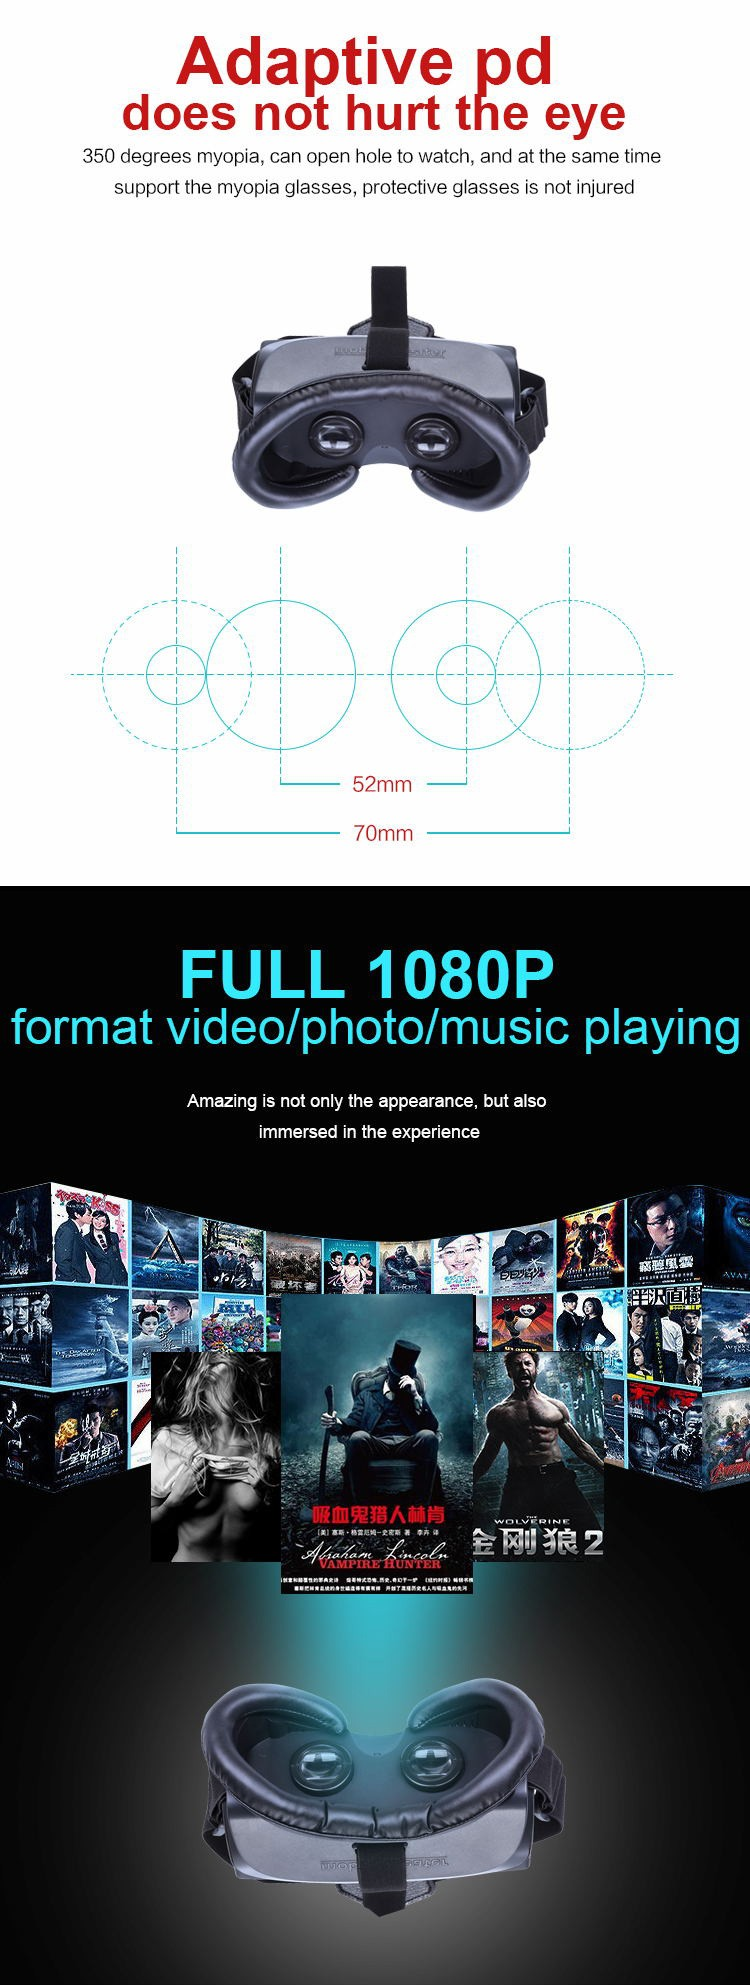 HDM518 3D Immersive VR Virtual Reality Headset IPD Adjustable 640*360 1080P FHD Video Music Private Theater HDM518 VR Headset